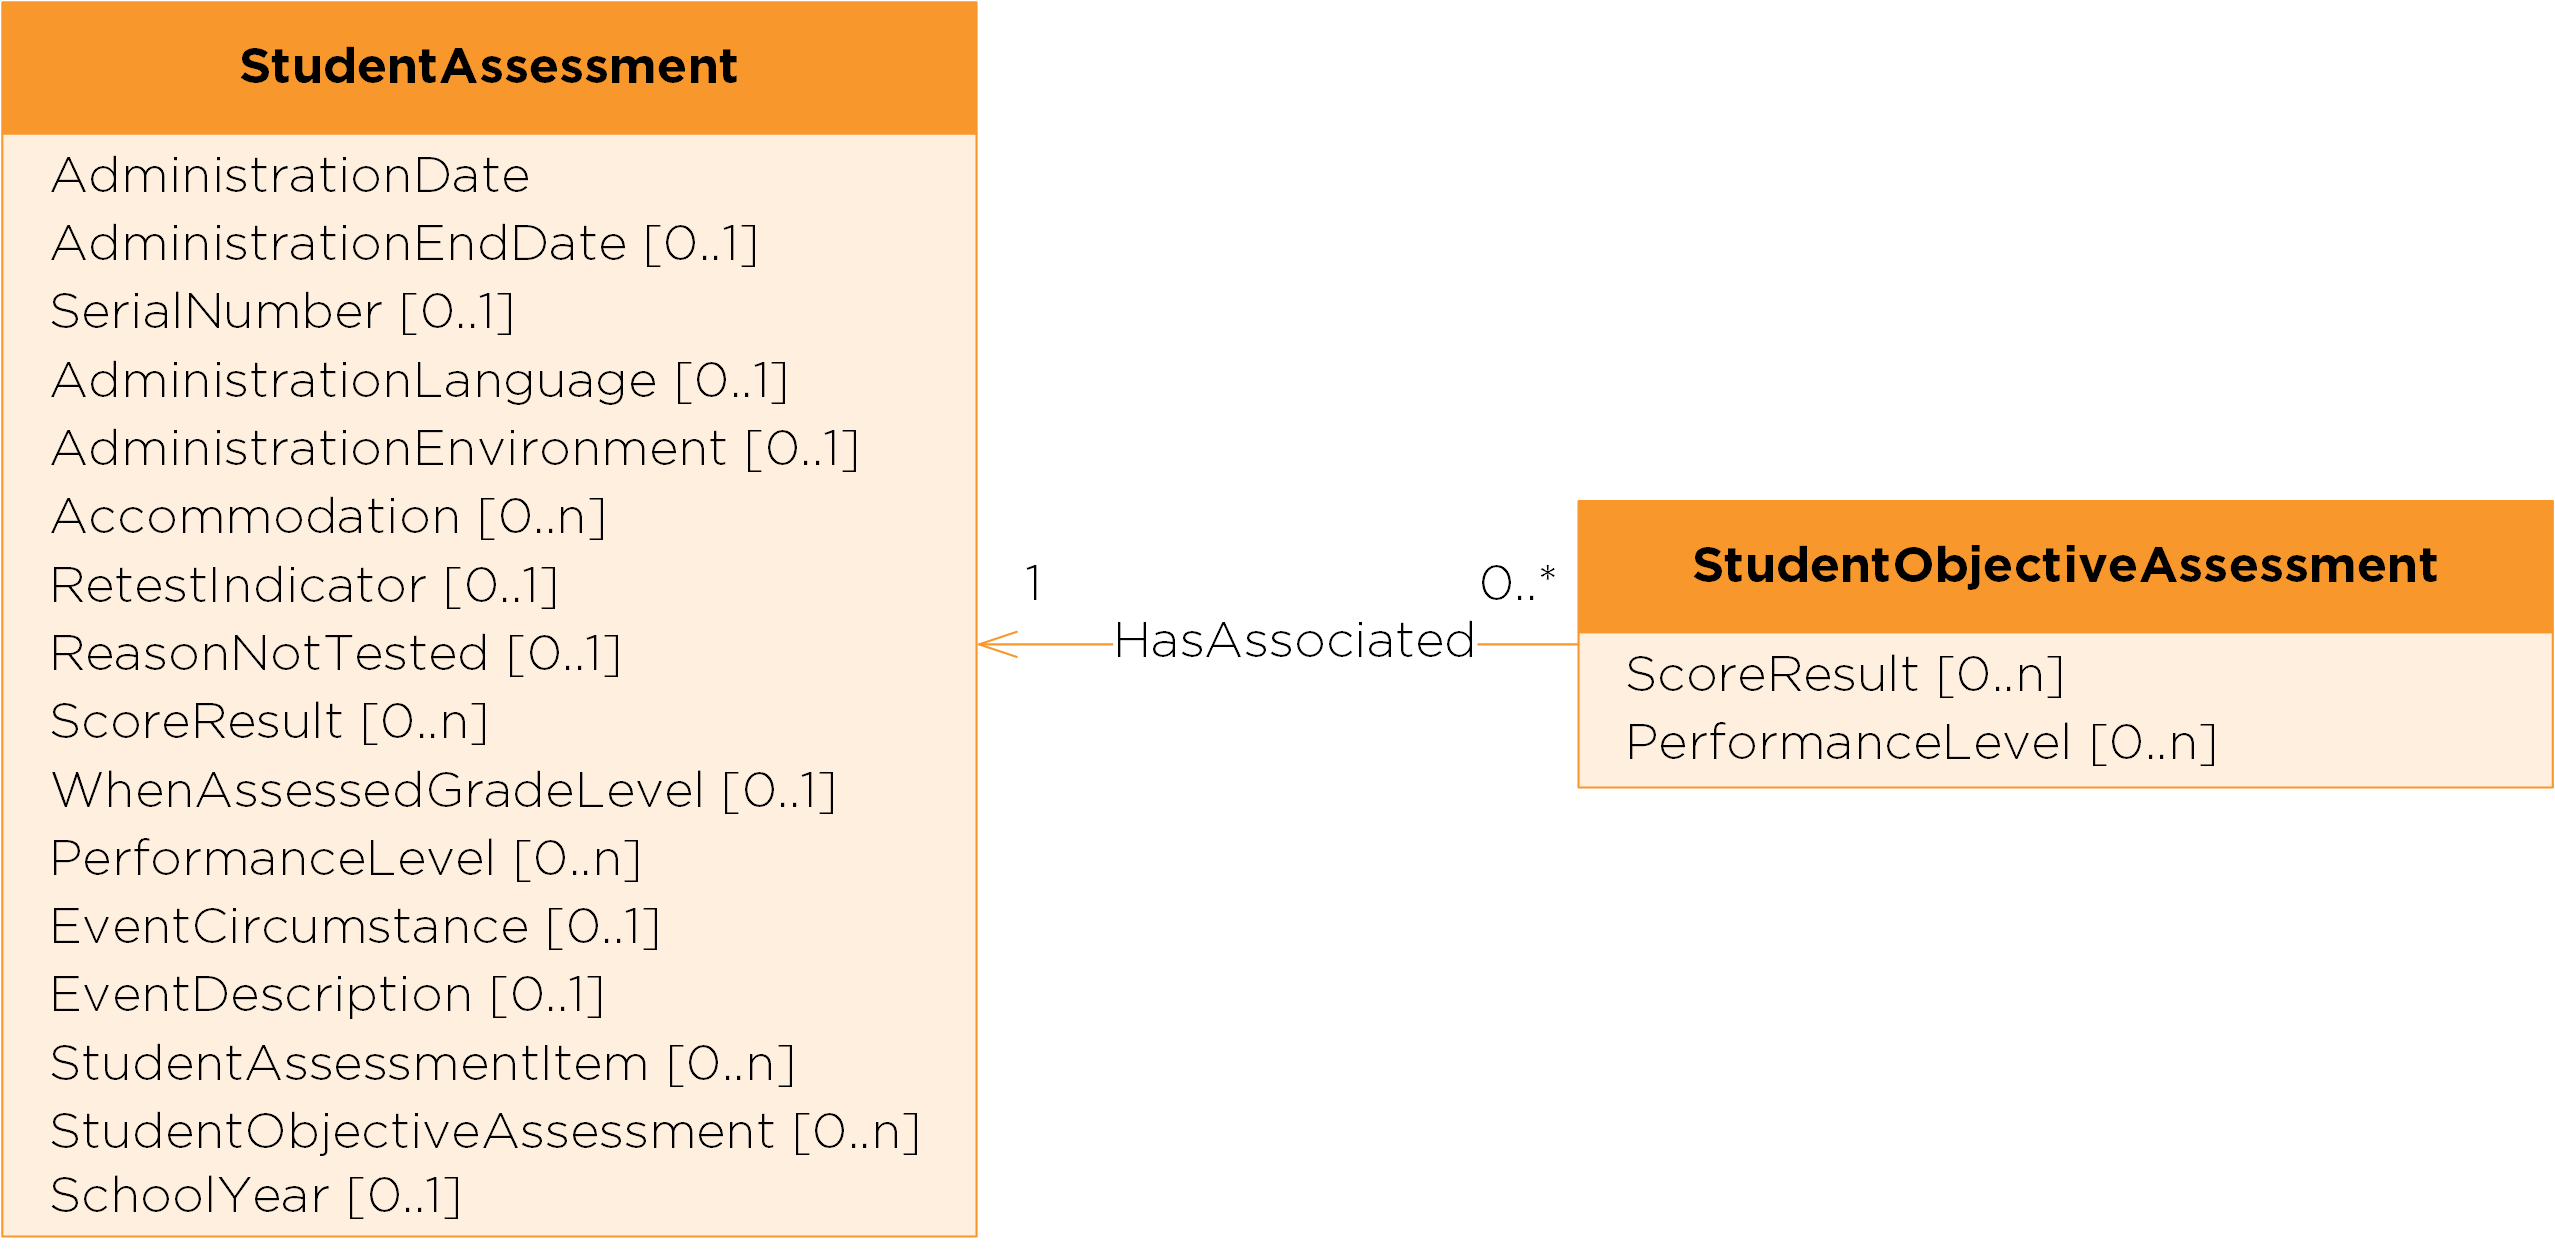 Assessment Udm V21 Data Standard Ed Fi Tech Docs Example State Diagram Courseoffering Once A Student Takes An The Results Can Be Modeled In Studentassessment And Studentobjectiveassessment Entities Each Of Which Has